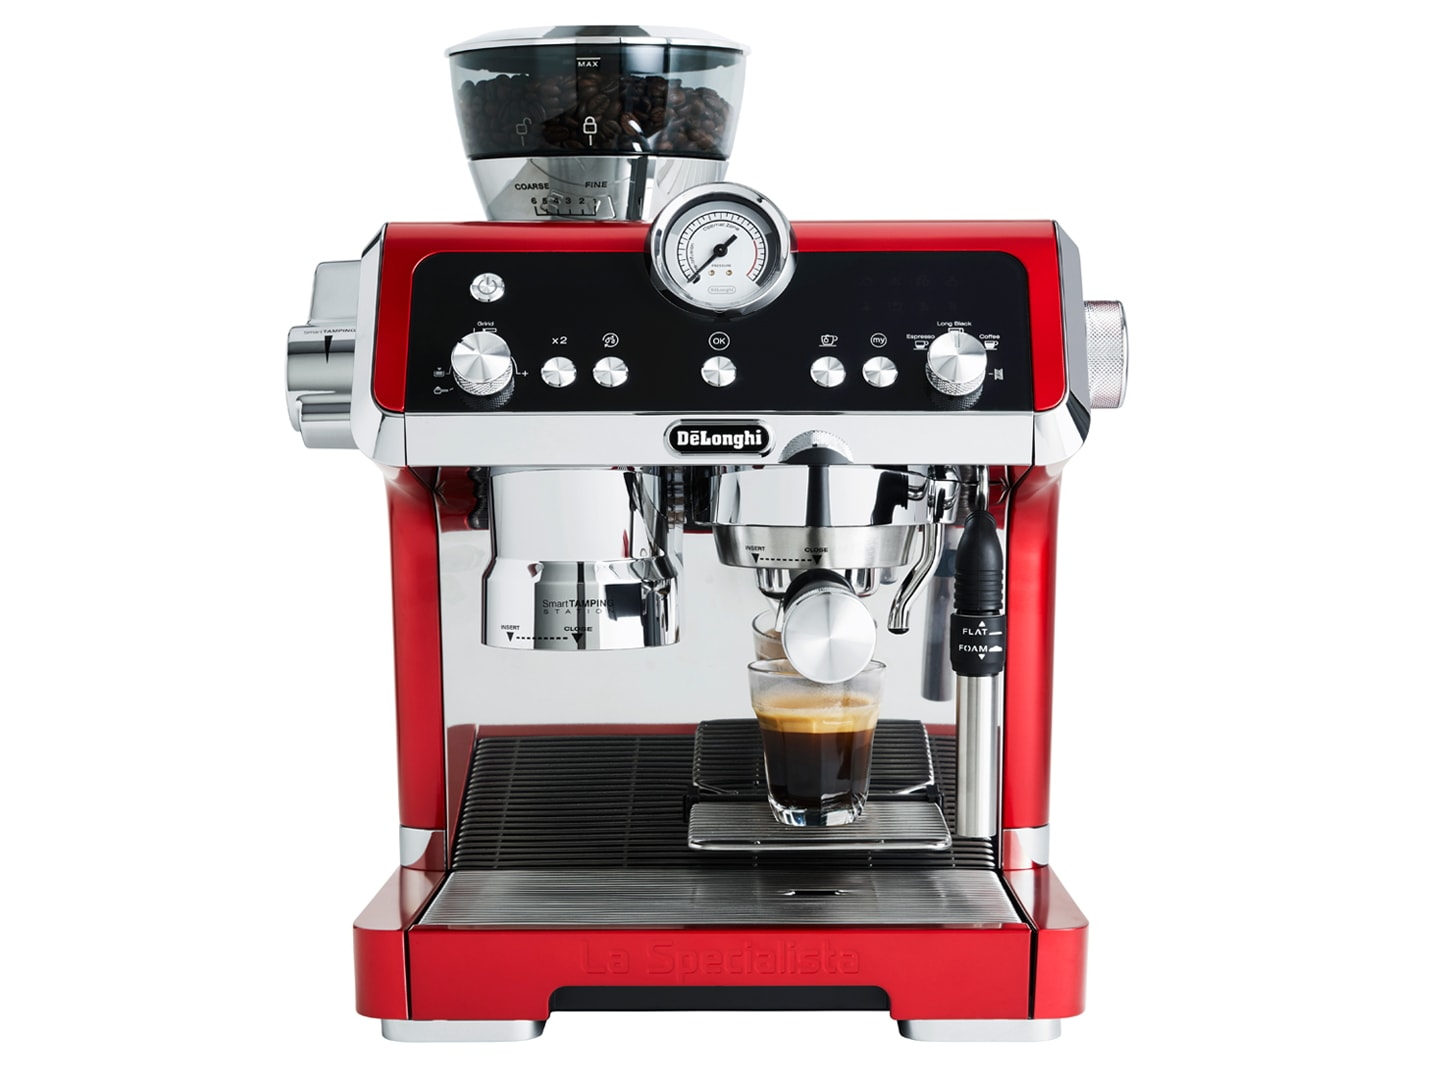 DeLonghi La Specialista EC9335.R Pump Espresso Coffee Machine in Red